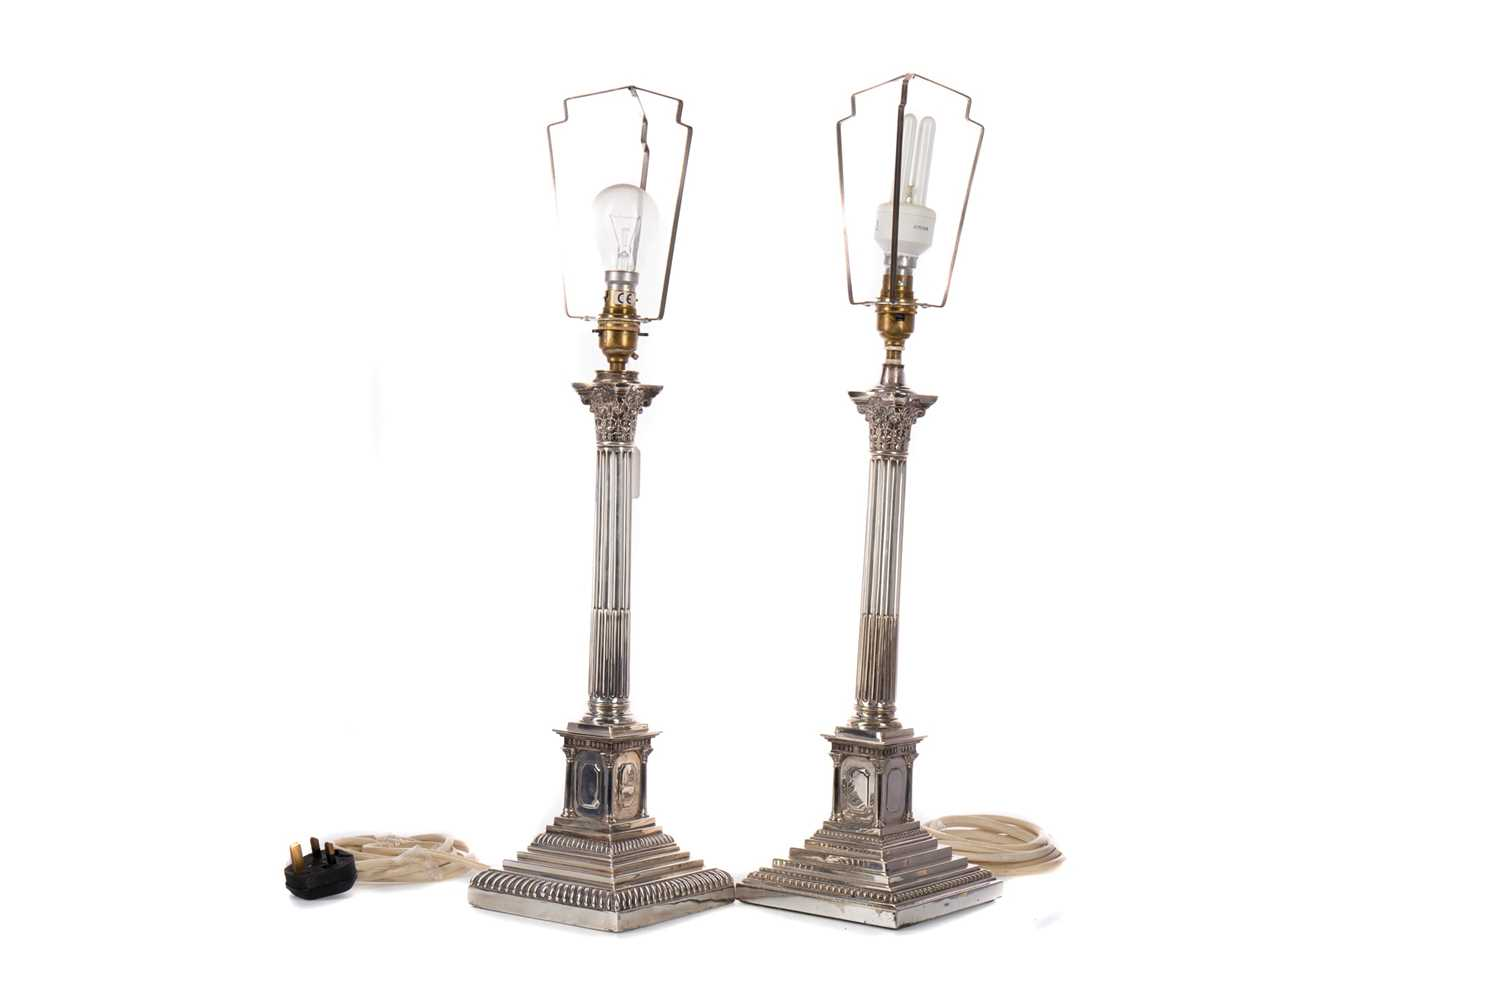 Lot 489 - A MATCHED PAIR OF EARLY 20TH CENTURY CORINTHIAN COLUM TABLE LAMPS